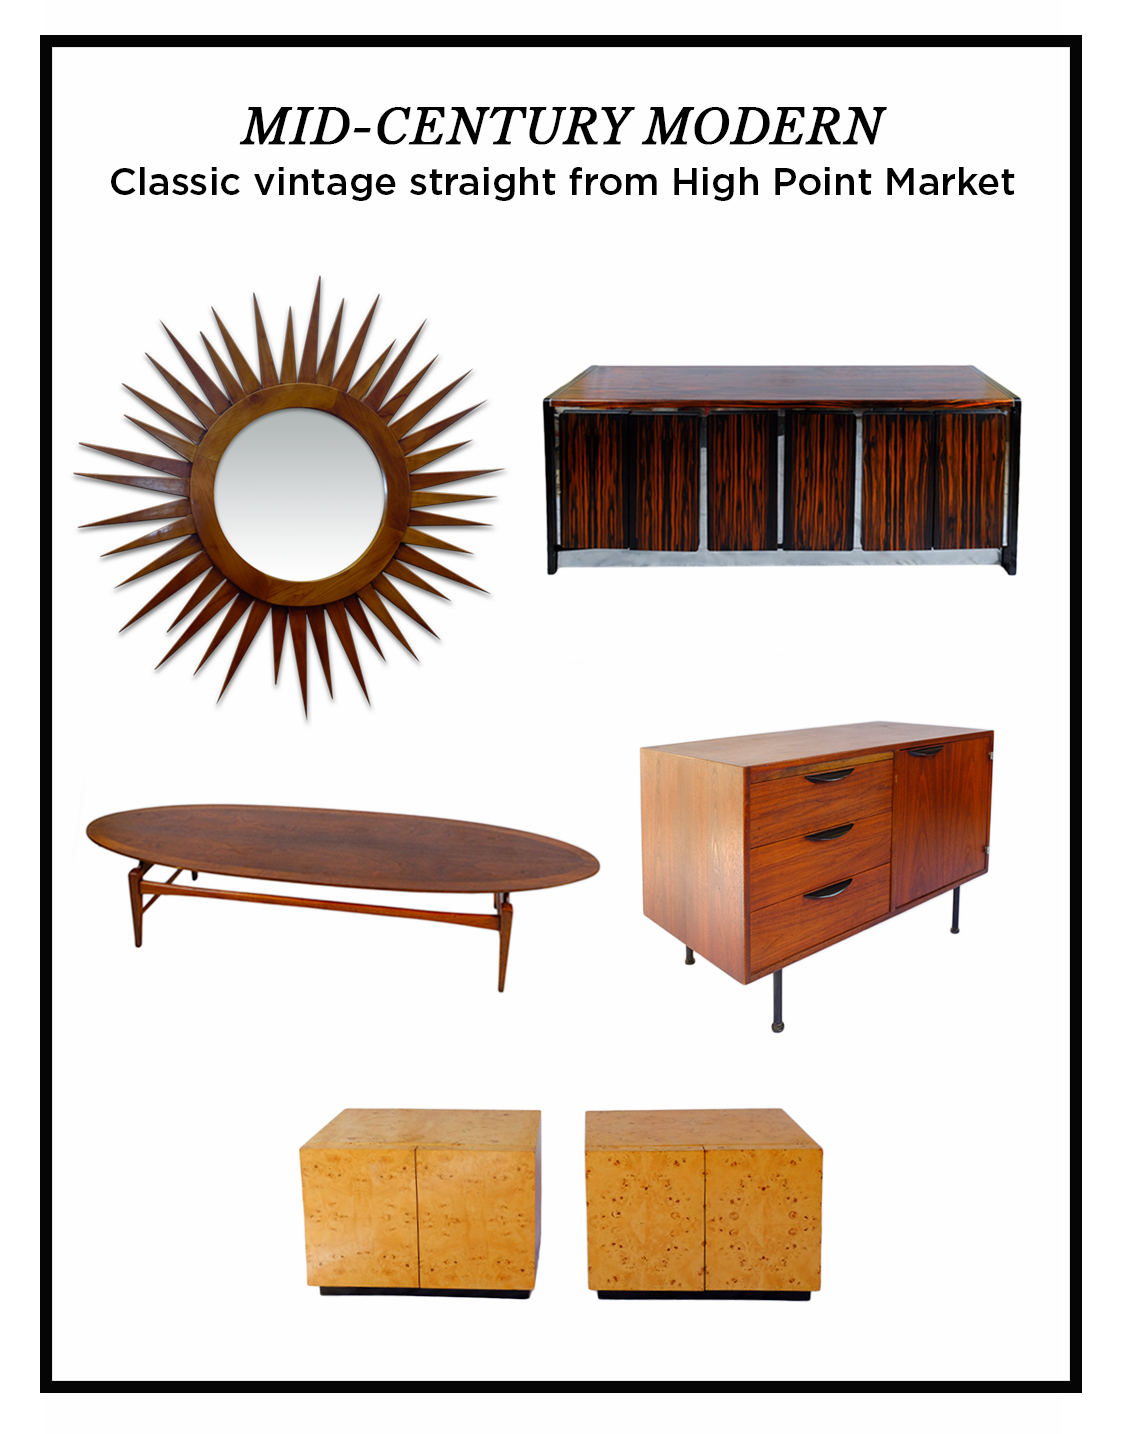 Our semi annual trip the High Point Market in North Carolina always lands  us in a trove of great vintage furniture  This year s haul has made its way  back. New Arrivals  Mid Century Modern   Weisshouse